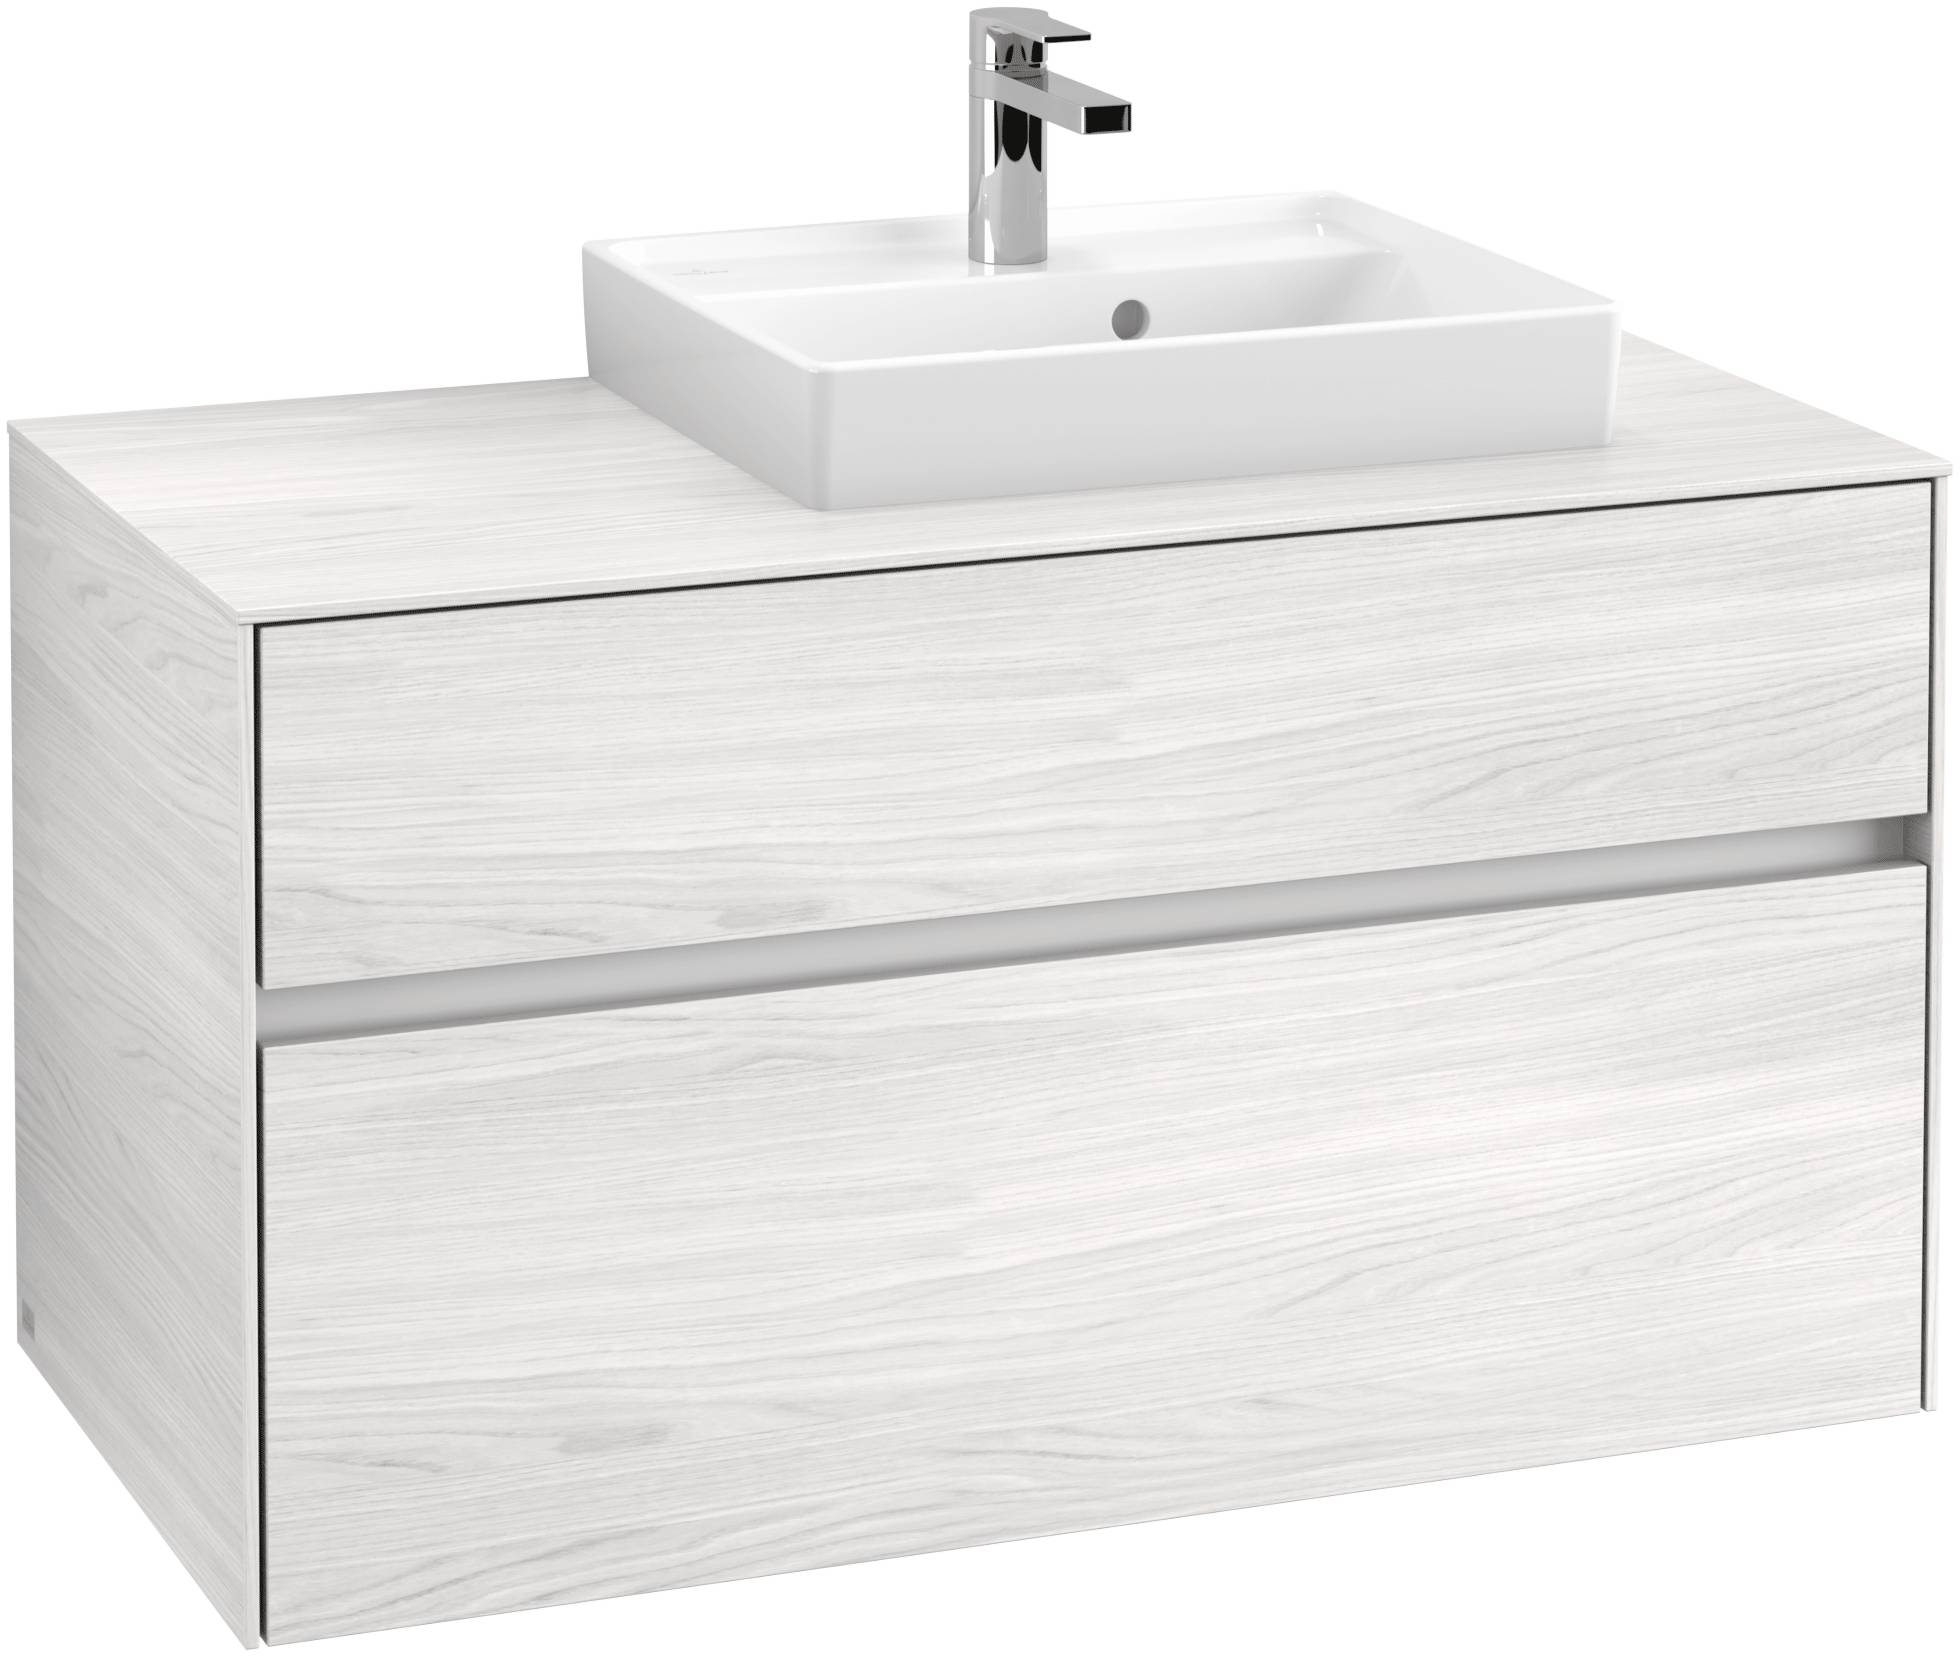 Villeroy & Boch Villeroy & Boch Collaro - Meuble sous lavabo with 2 drawers & 1 cut-out right 1000 x 548 x 500mm bois blanc